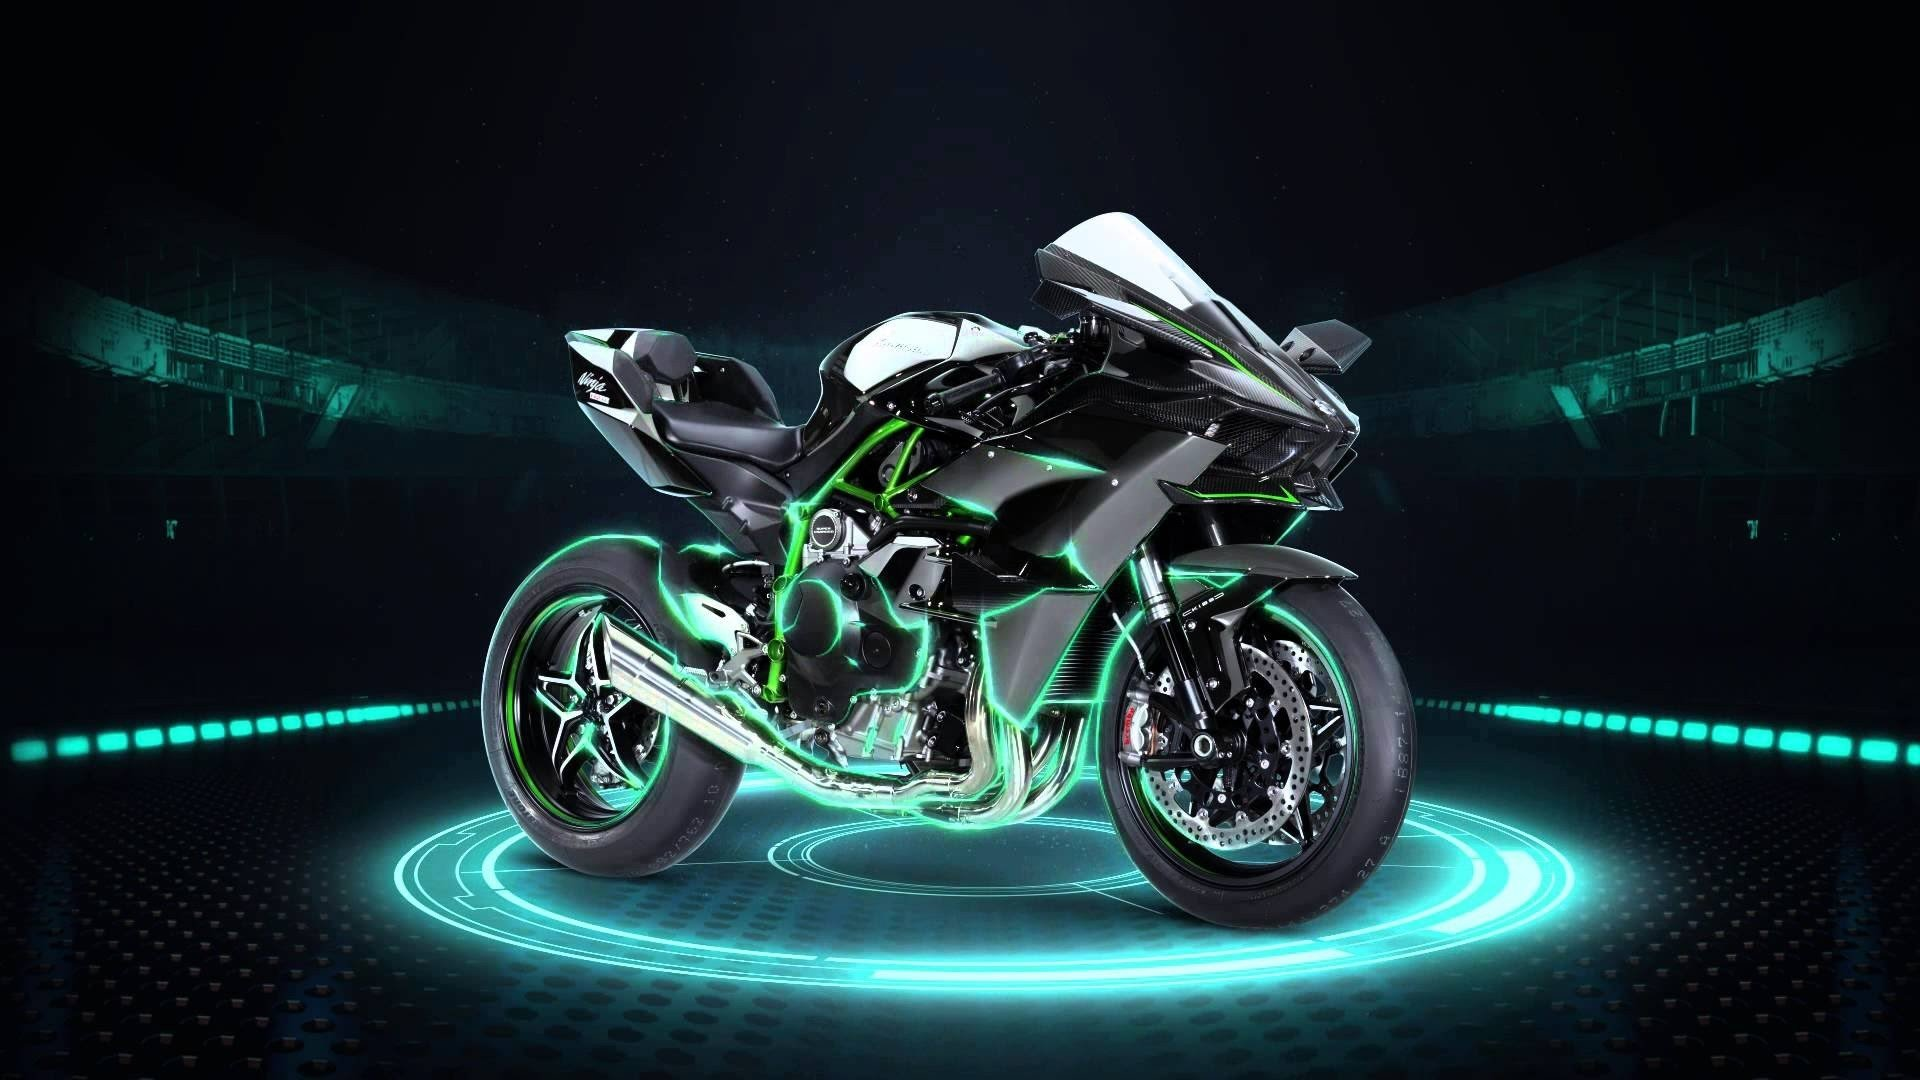 Kawasaki Kawasaki Ninja H2r Hd Wallpapers Desktop And Mobile Images Photos